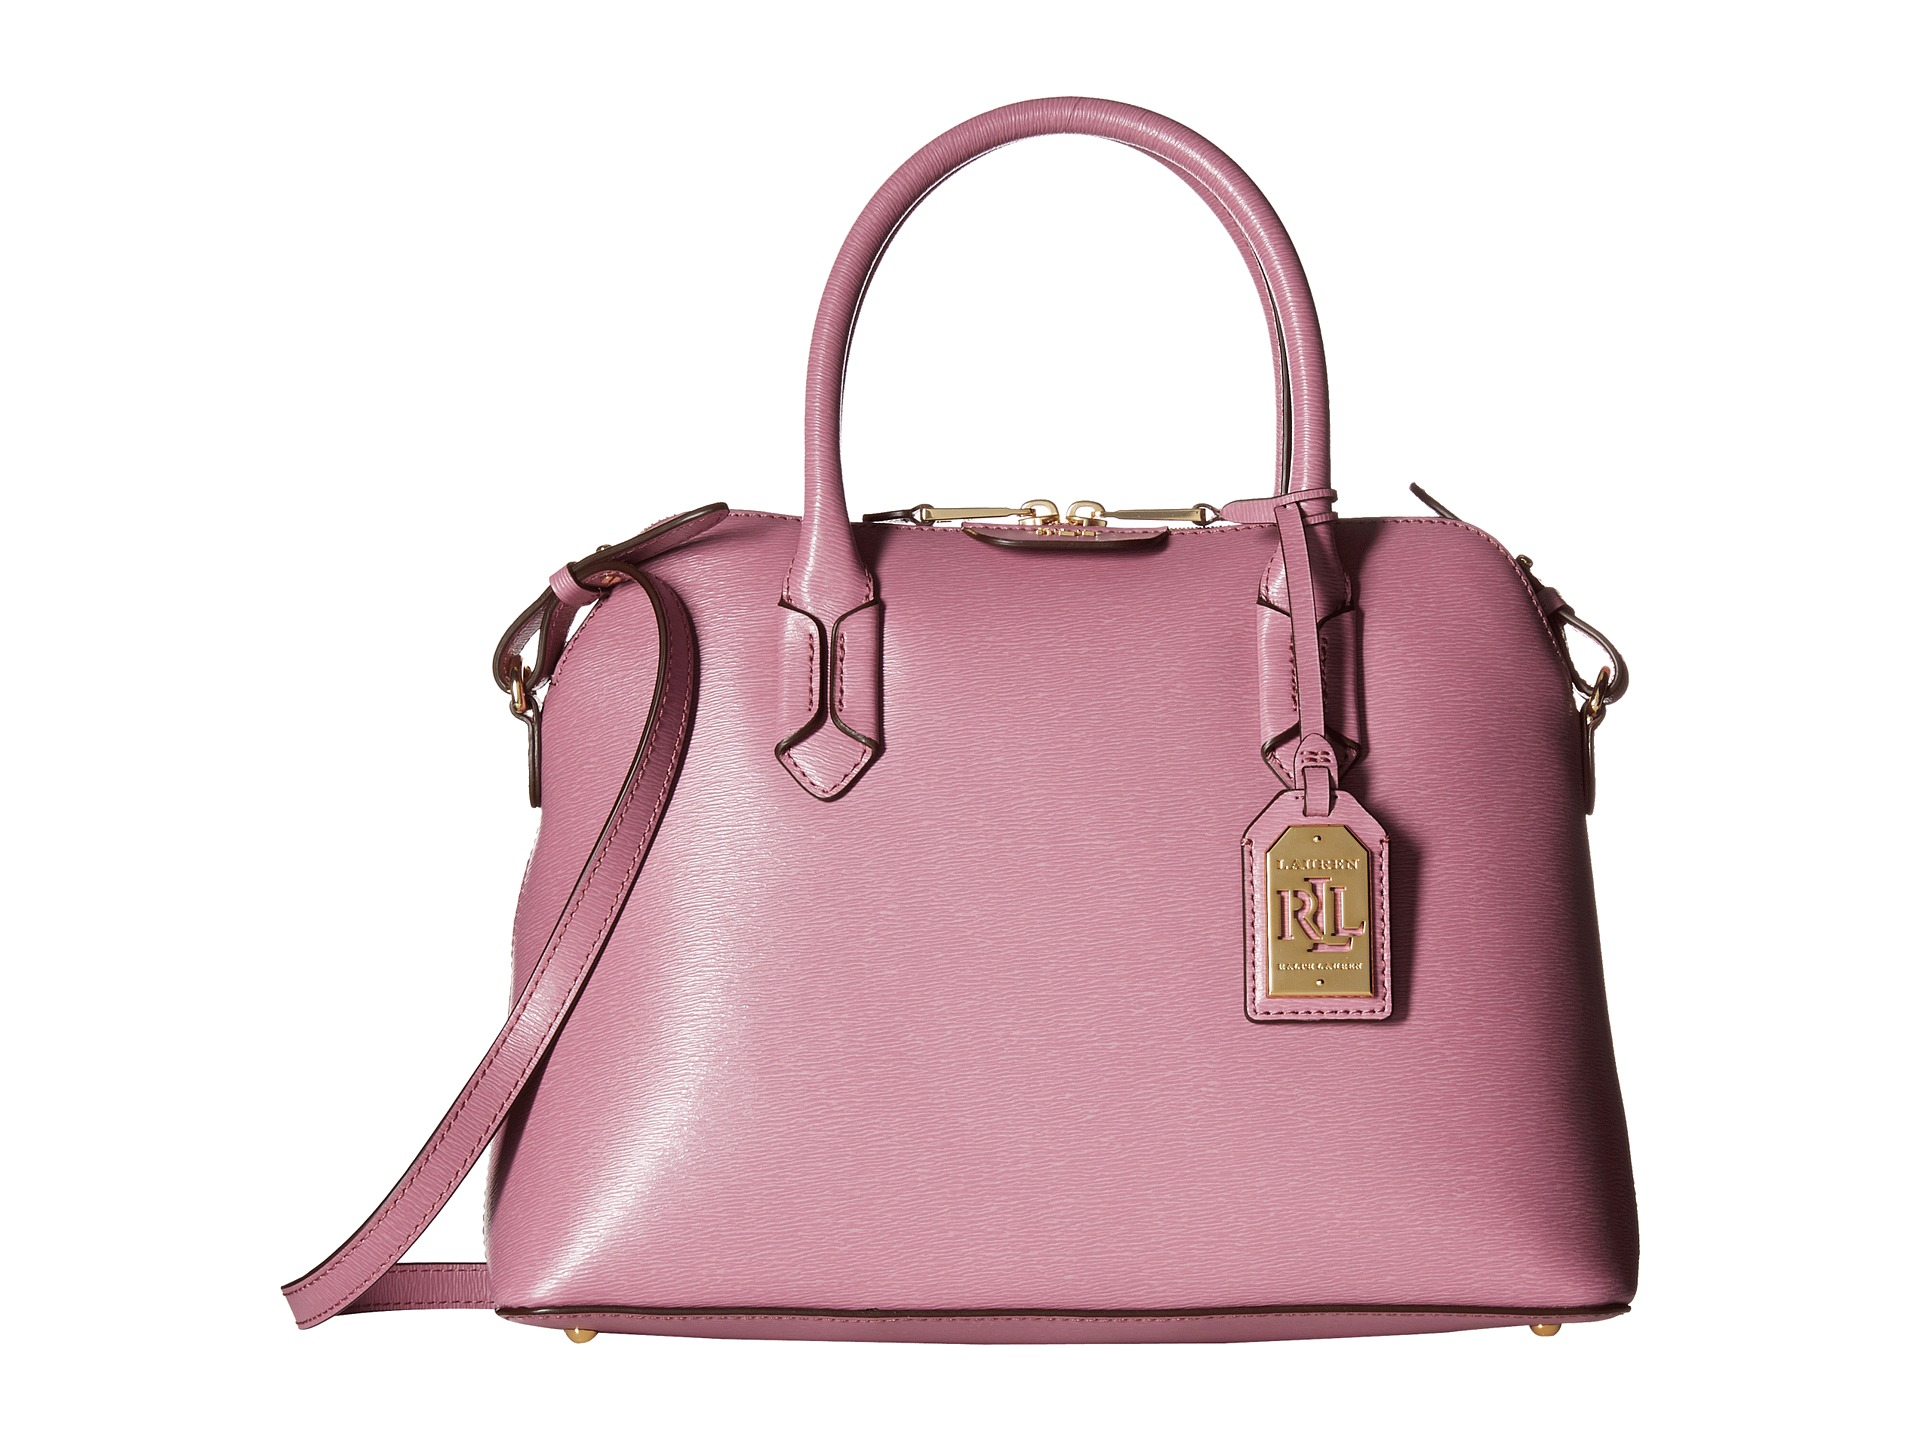 Ralph Lauren Tate Dome Satchel Laukku : Lauren by ralph tate dome satchel deco rose